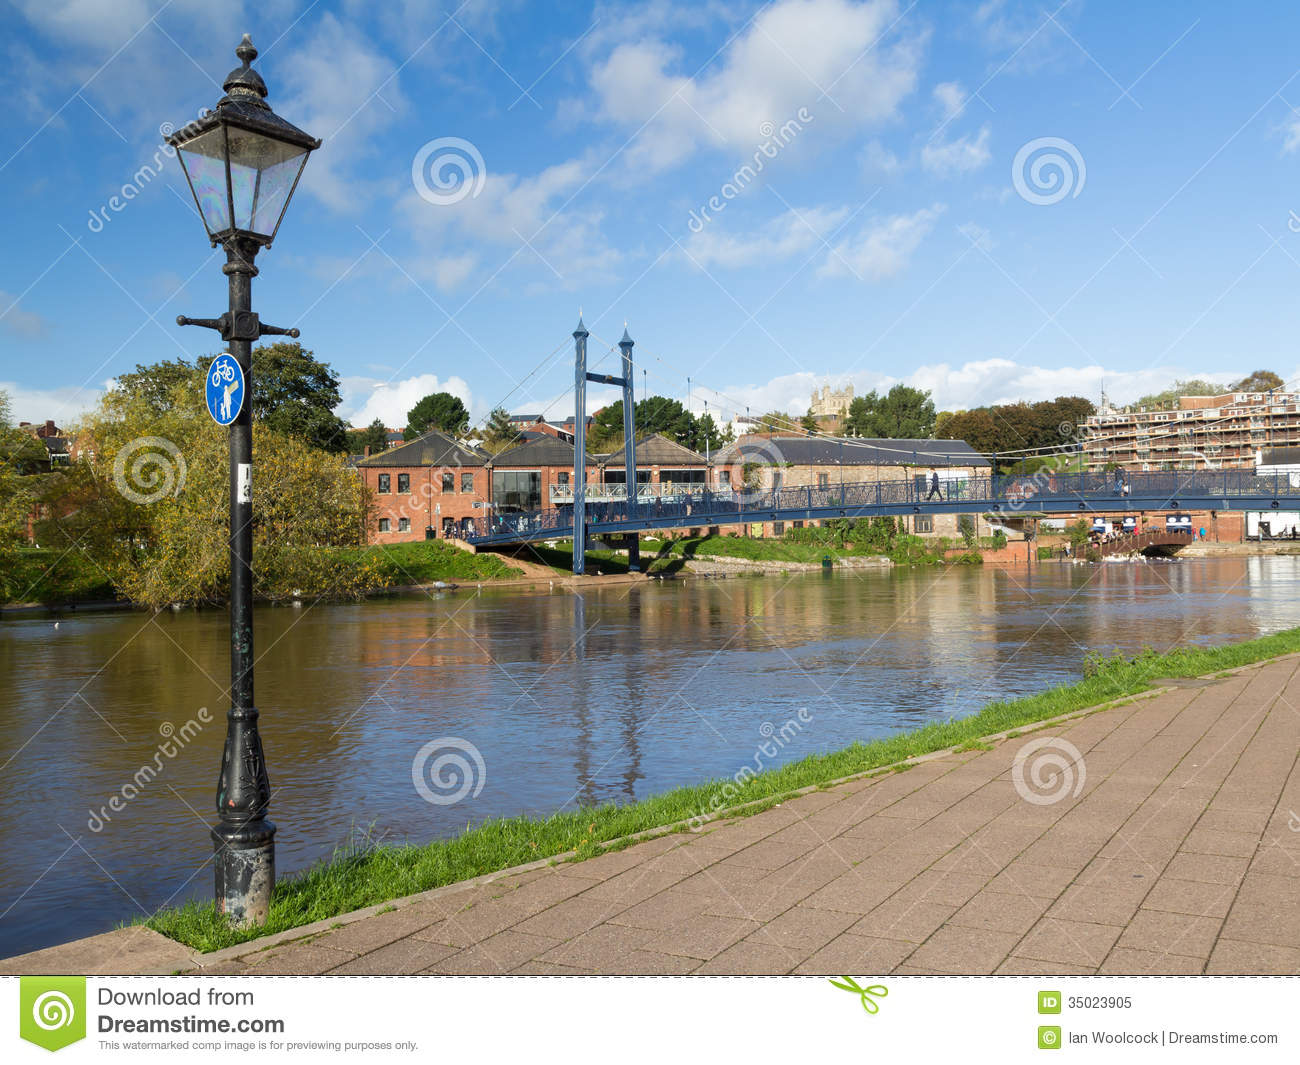 Royalty Free Stock Photo Exeter Devon England Uk Quayside Europe Image35023905 on 4